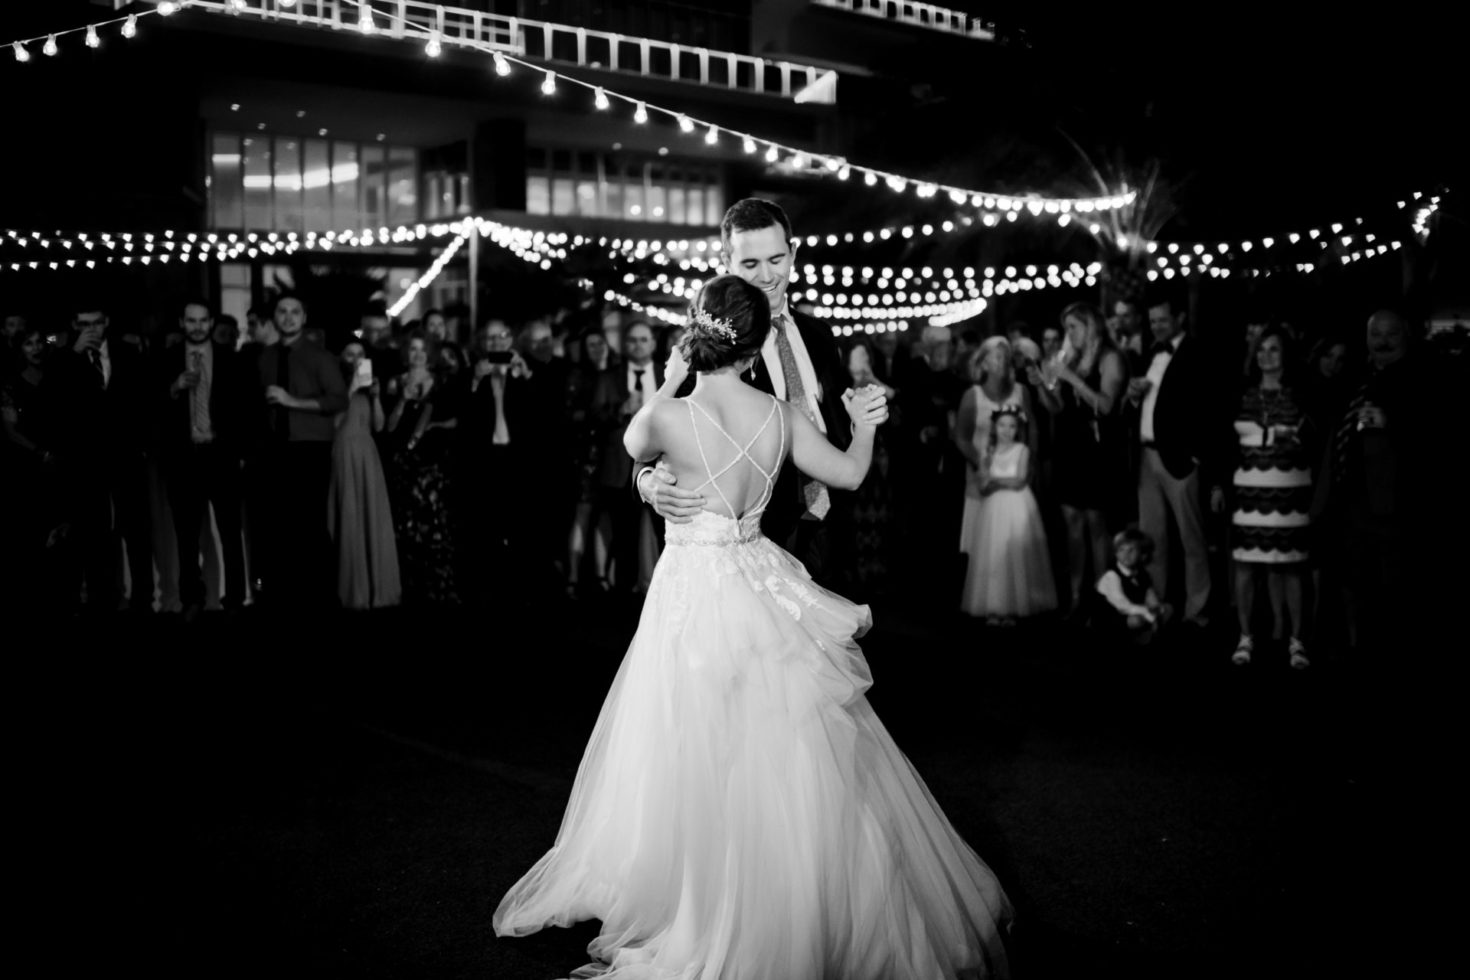 Cleveland Wedding Photography Black and White Dance Photo